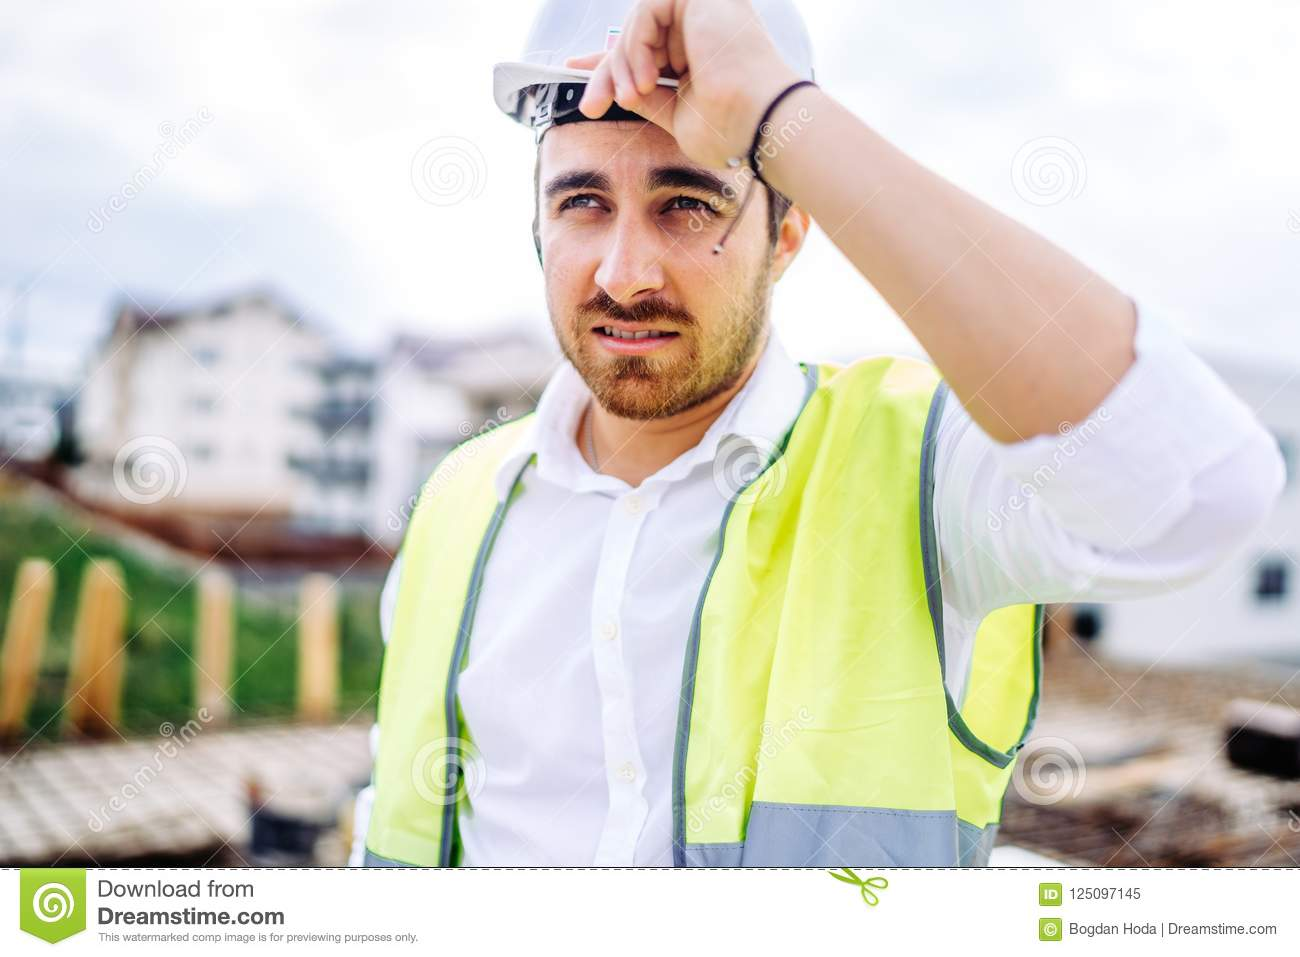 architect working on construction site, wearing hard hat and safety vest